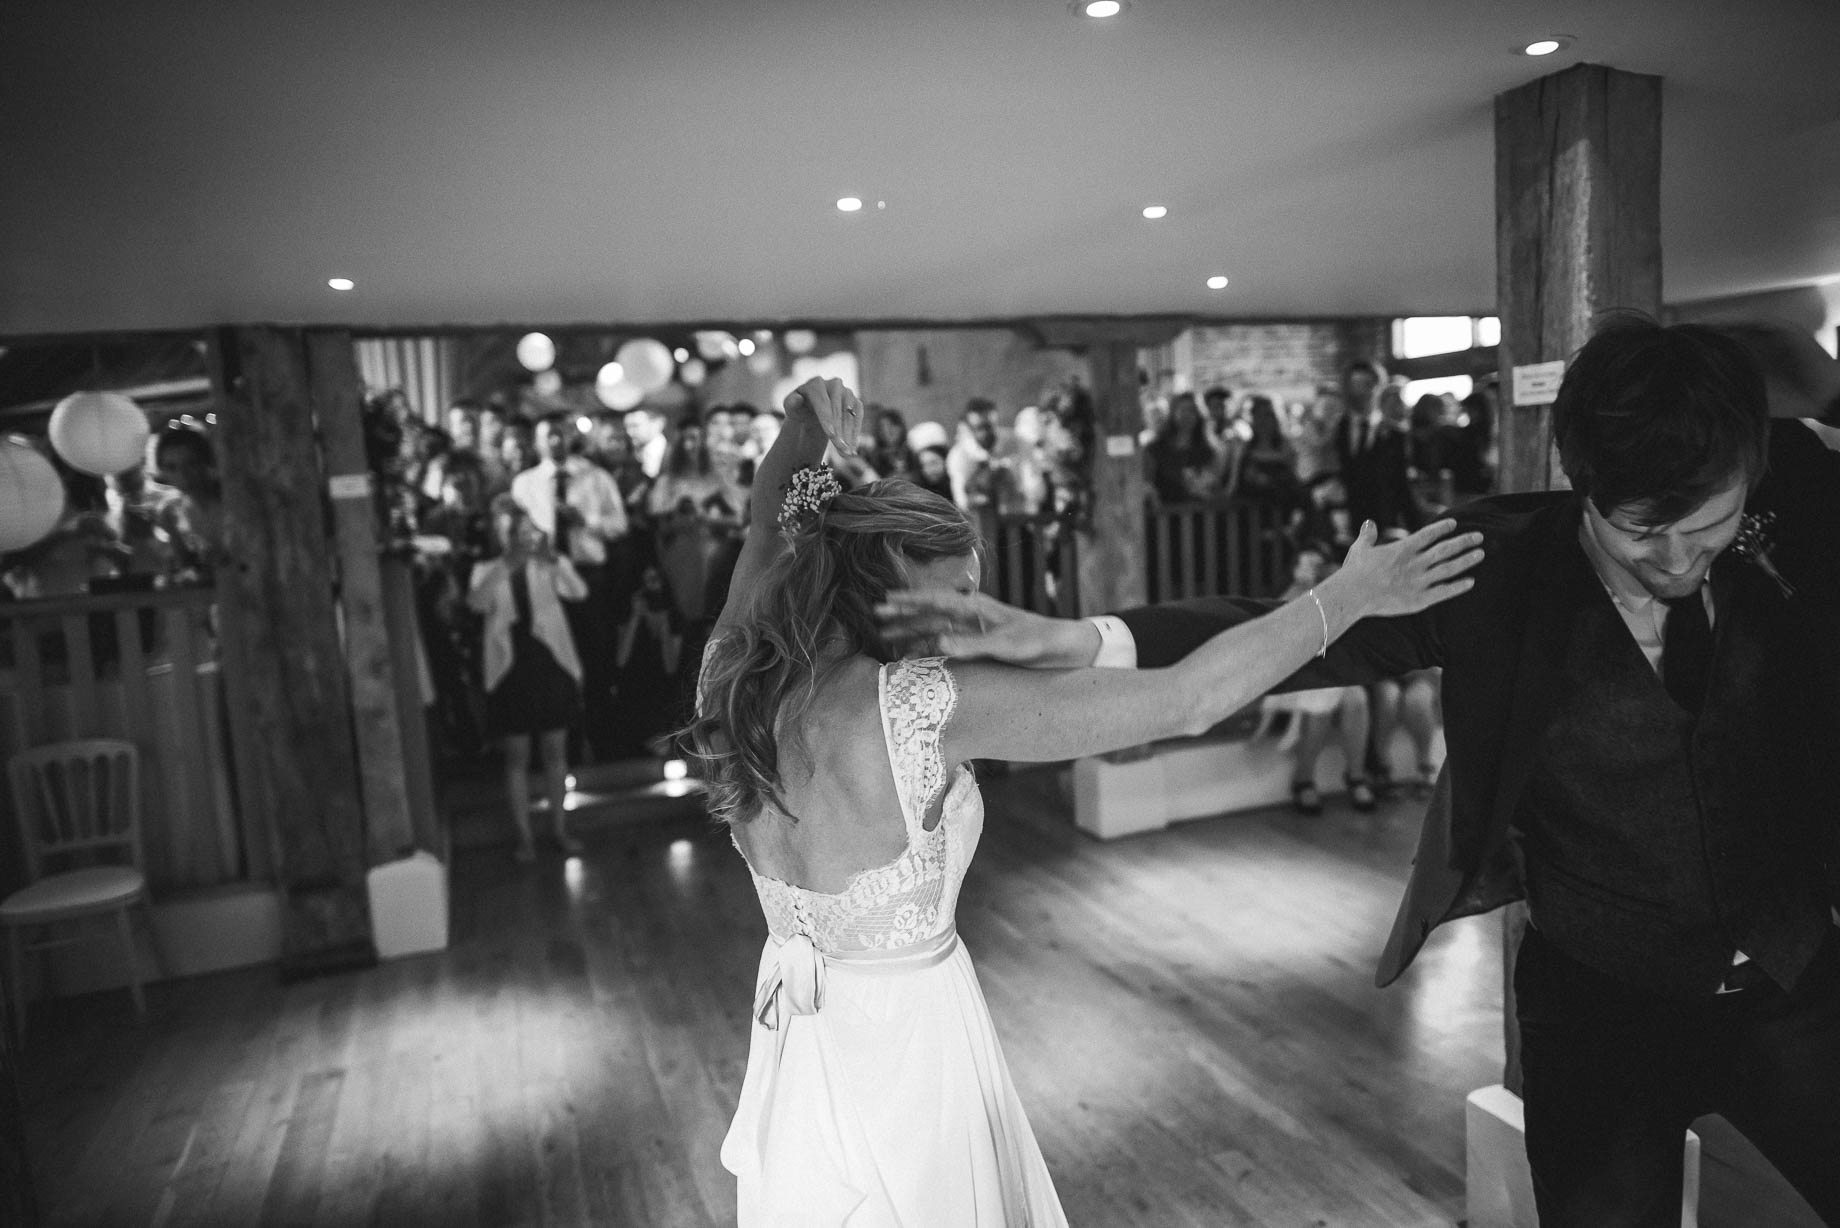 Bury Court Barn wedding photography by Guy Collier - Heather and Pat (160 of 170)